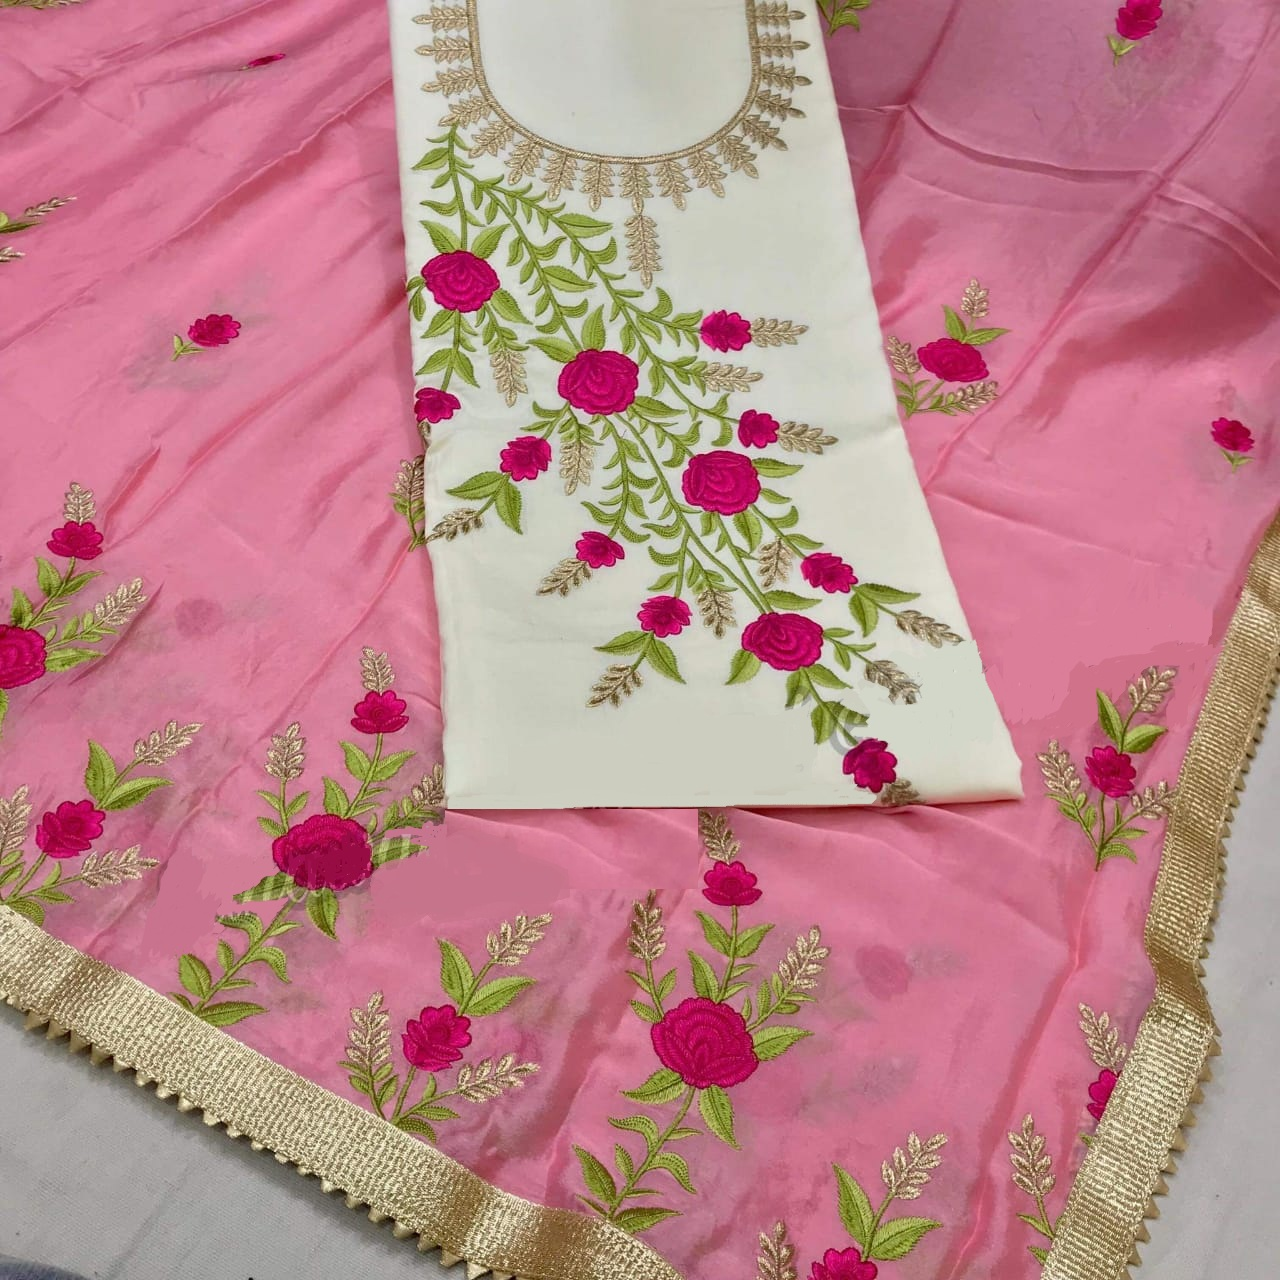 Buy White Cotton Salwar Suit With Pink Dupatta Online in India - YOYO Fashion